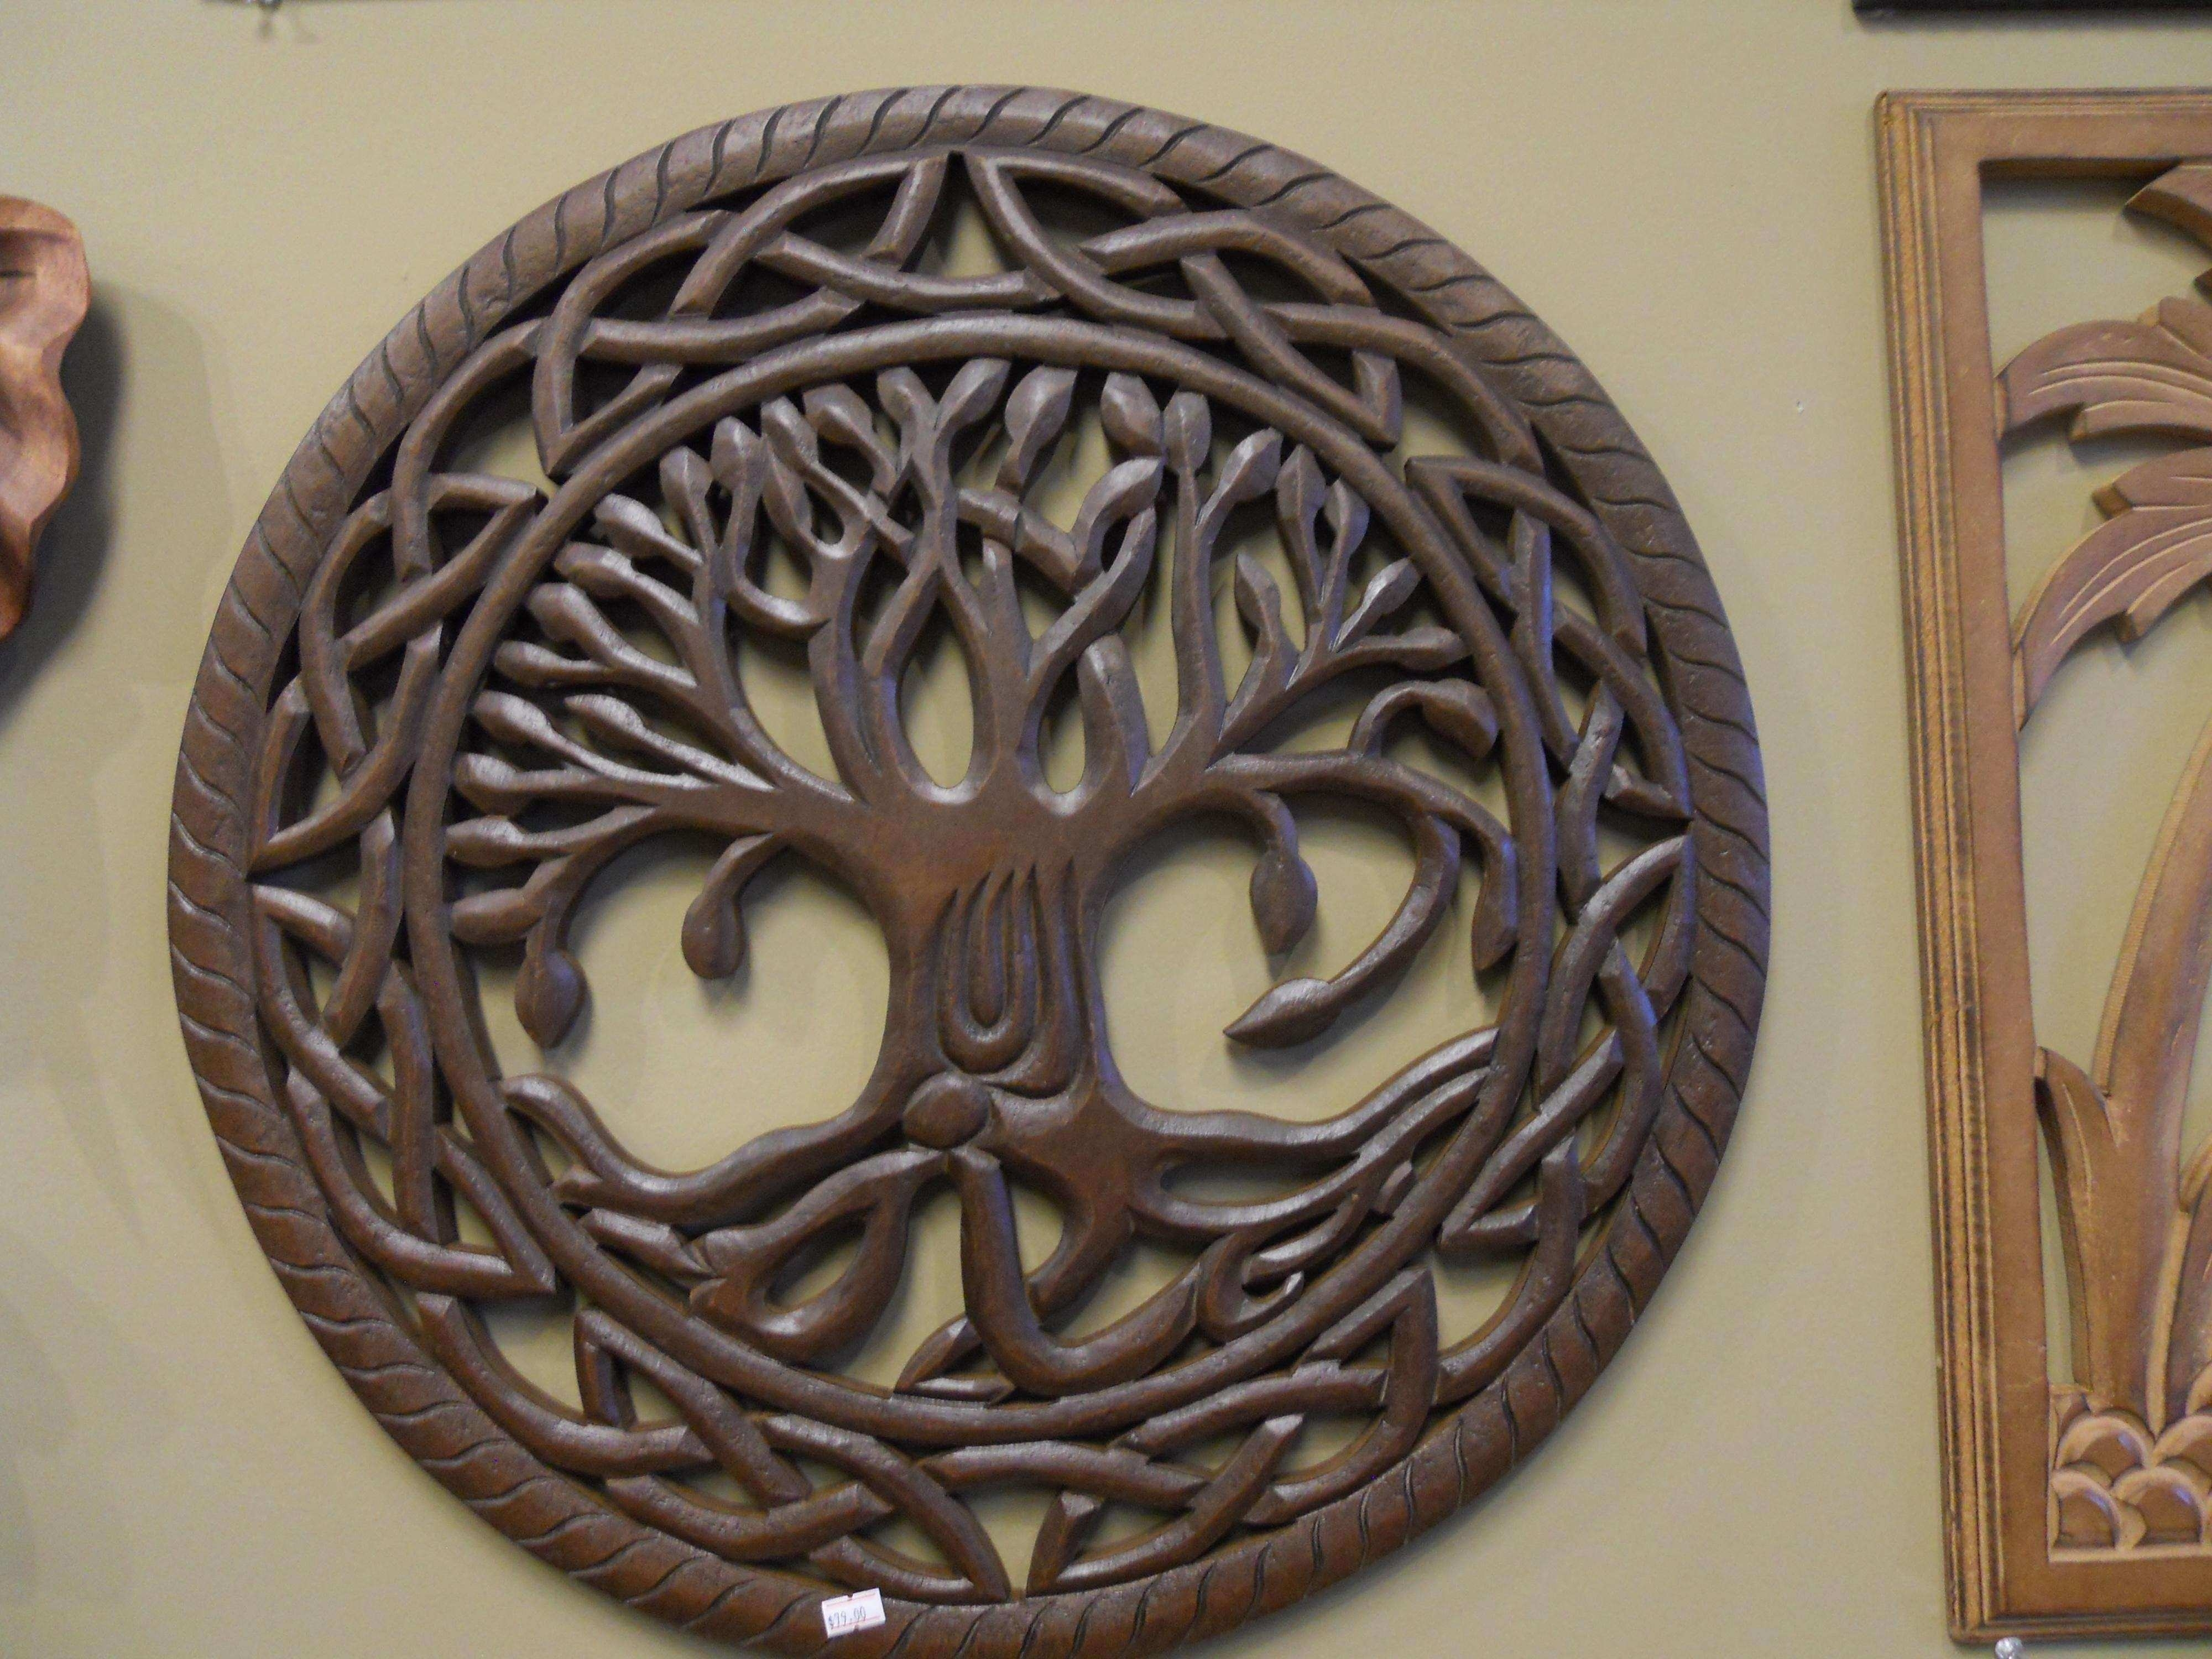 Wood Carved Wall Art Best Of Wall Art Designs Carved Wood Wall Art Intended For Wood Carved Wall Art (Photo 11 of 20)